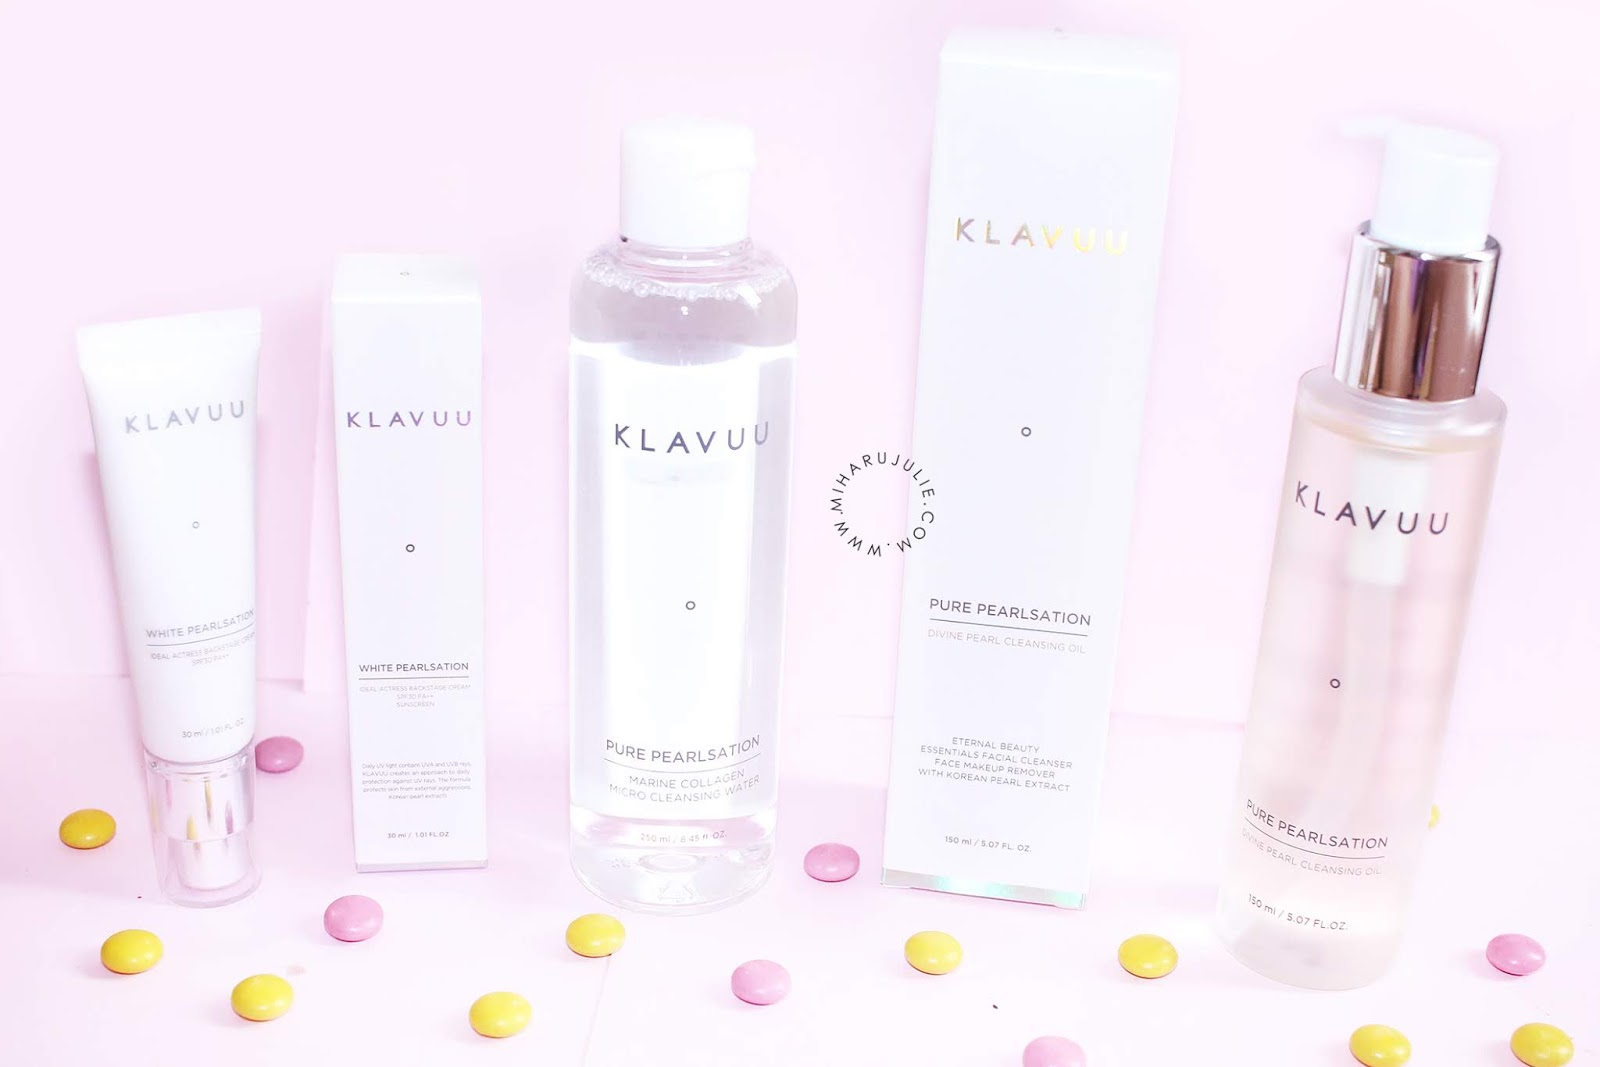 Klavuu Korean Skincare and Makeup